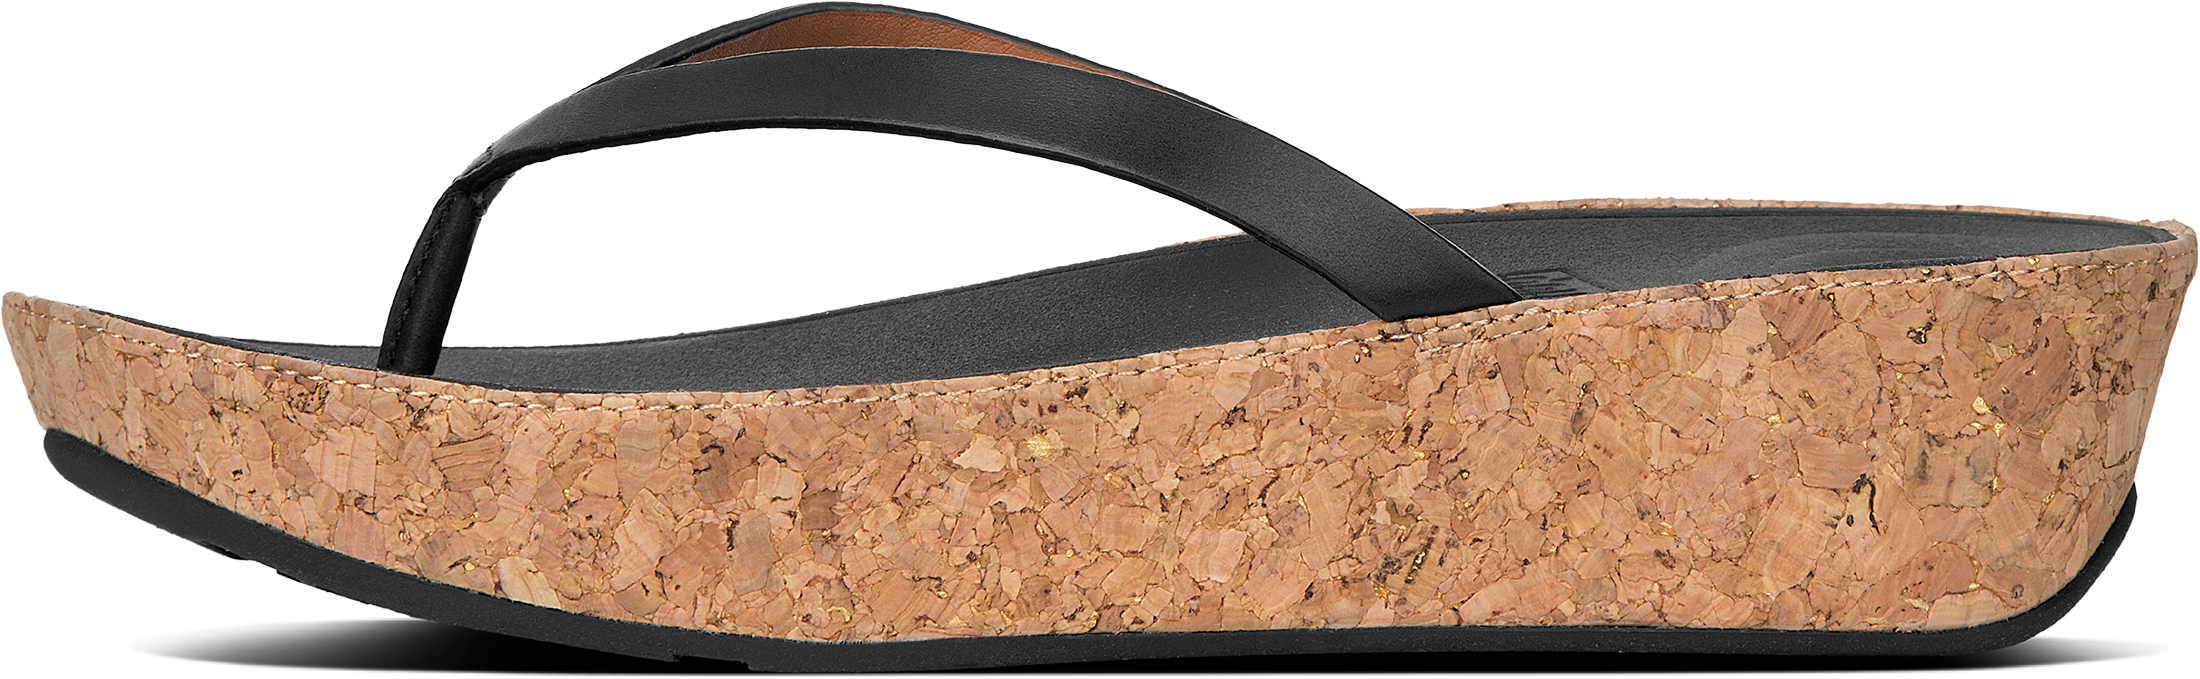 FITFLOP Toe Linny Donna Sandali Infradito Toe FITFLOP - d0fdcc